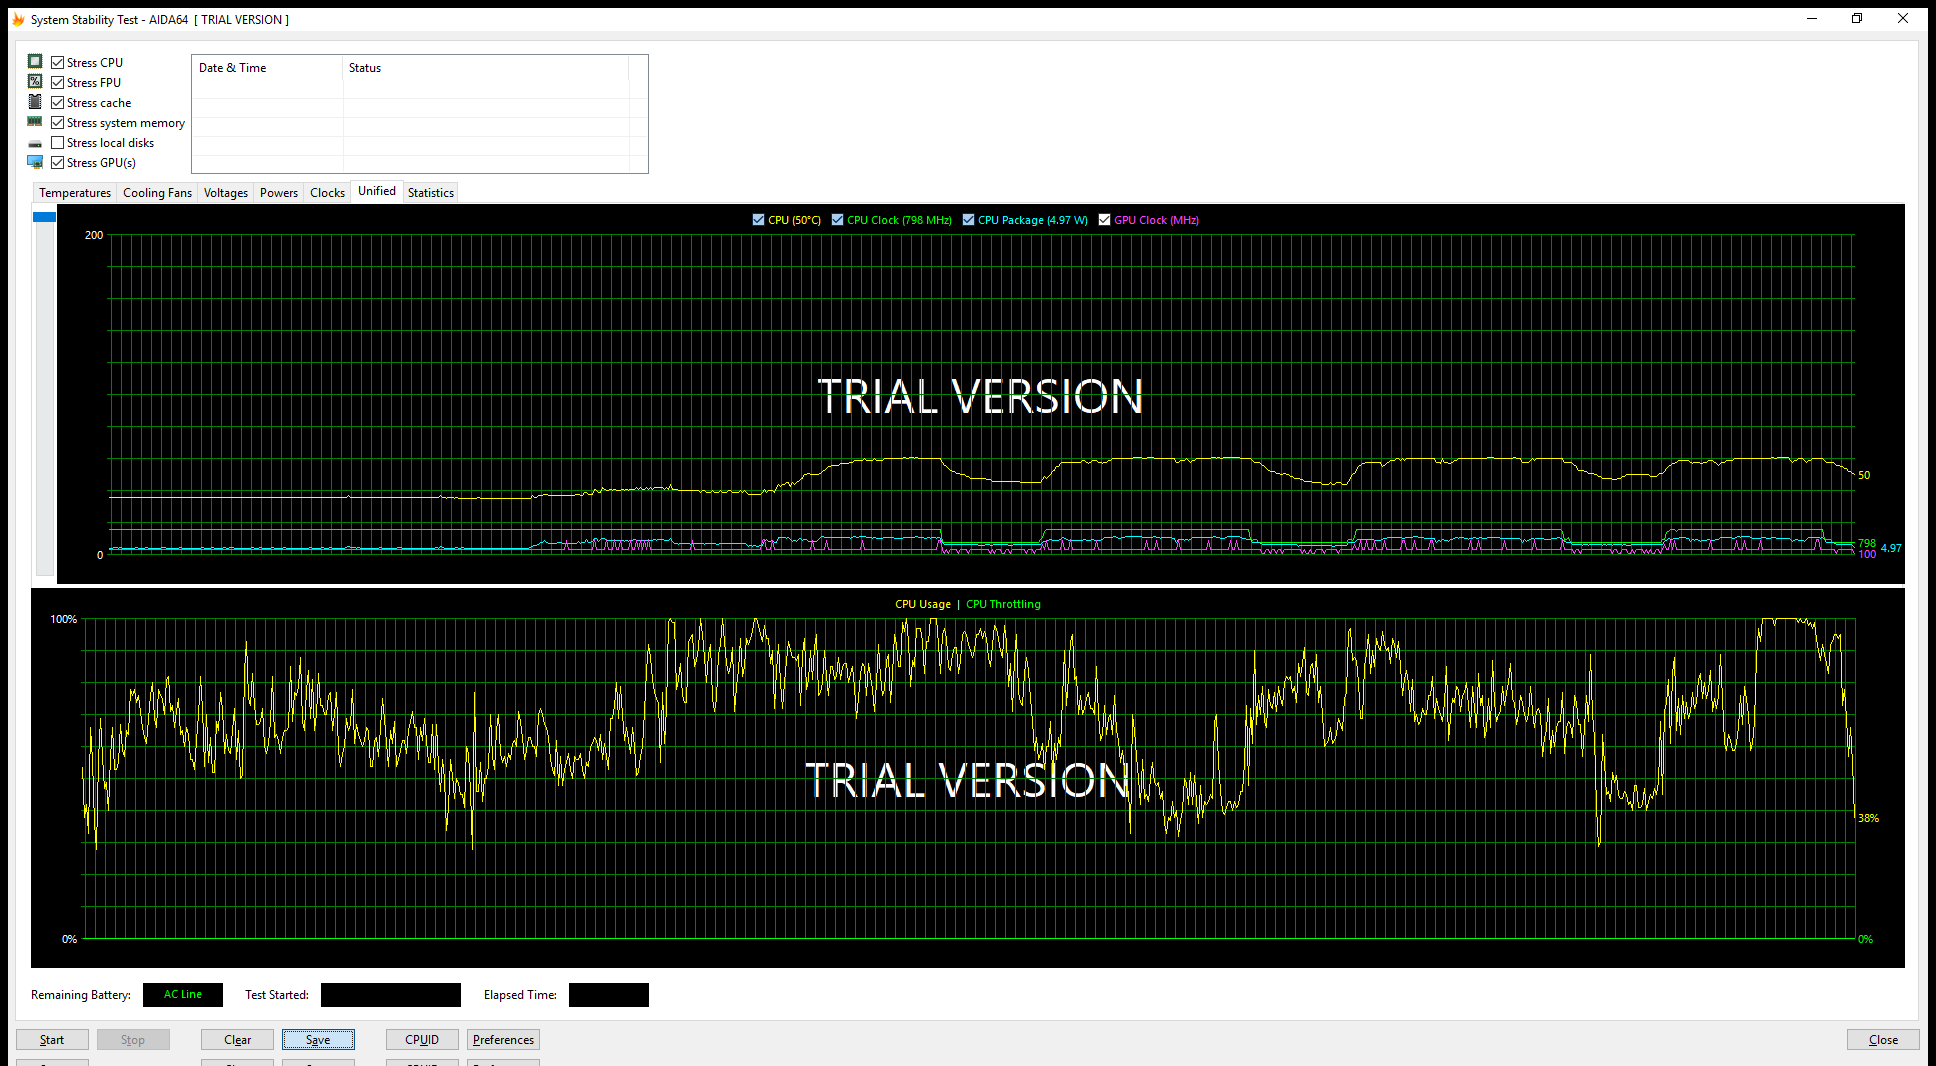 XPS 15 9550 terrible thermals - need creative solutions